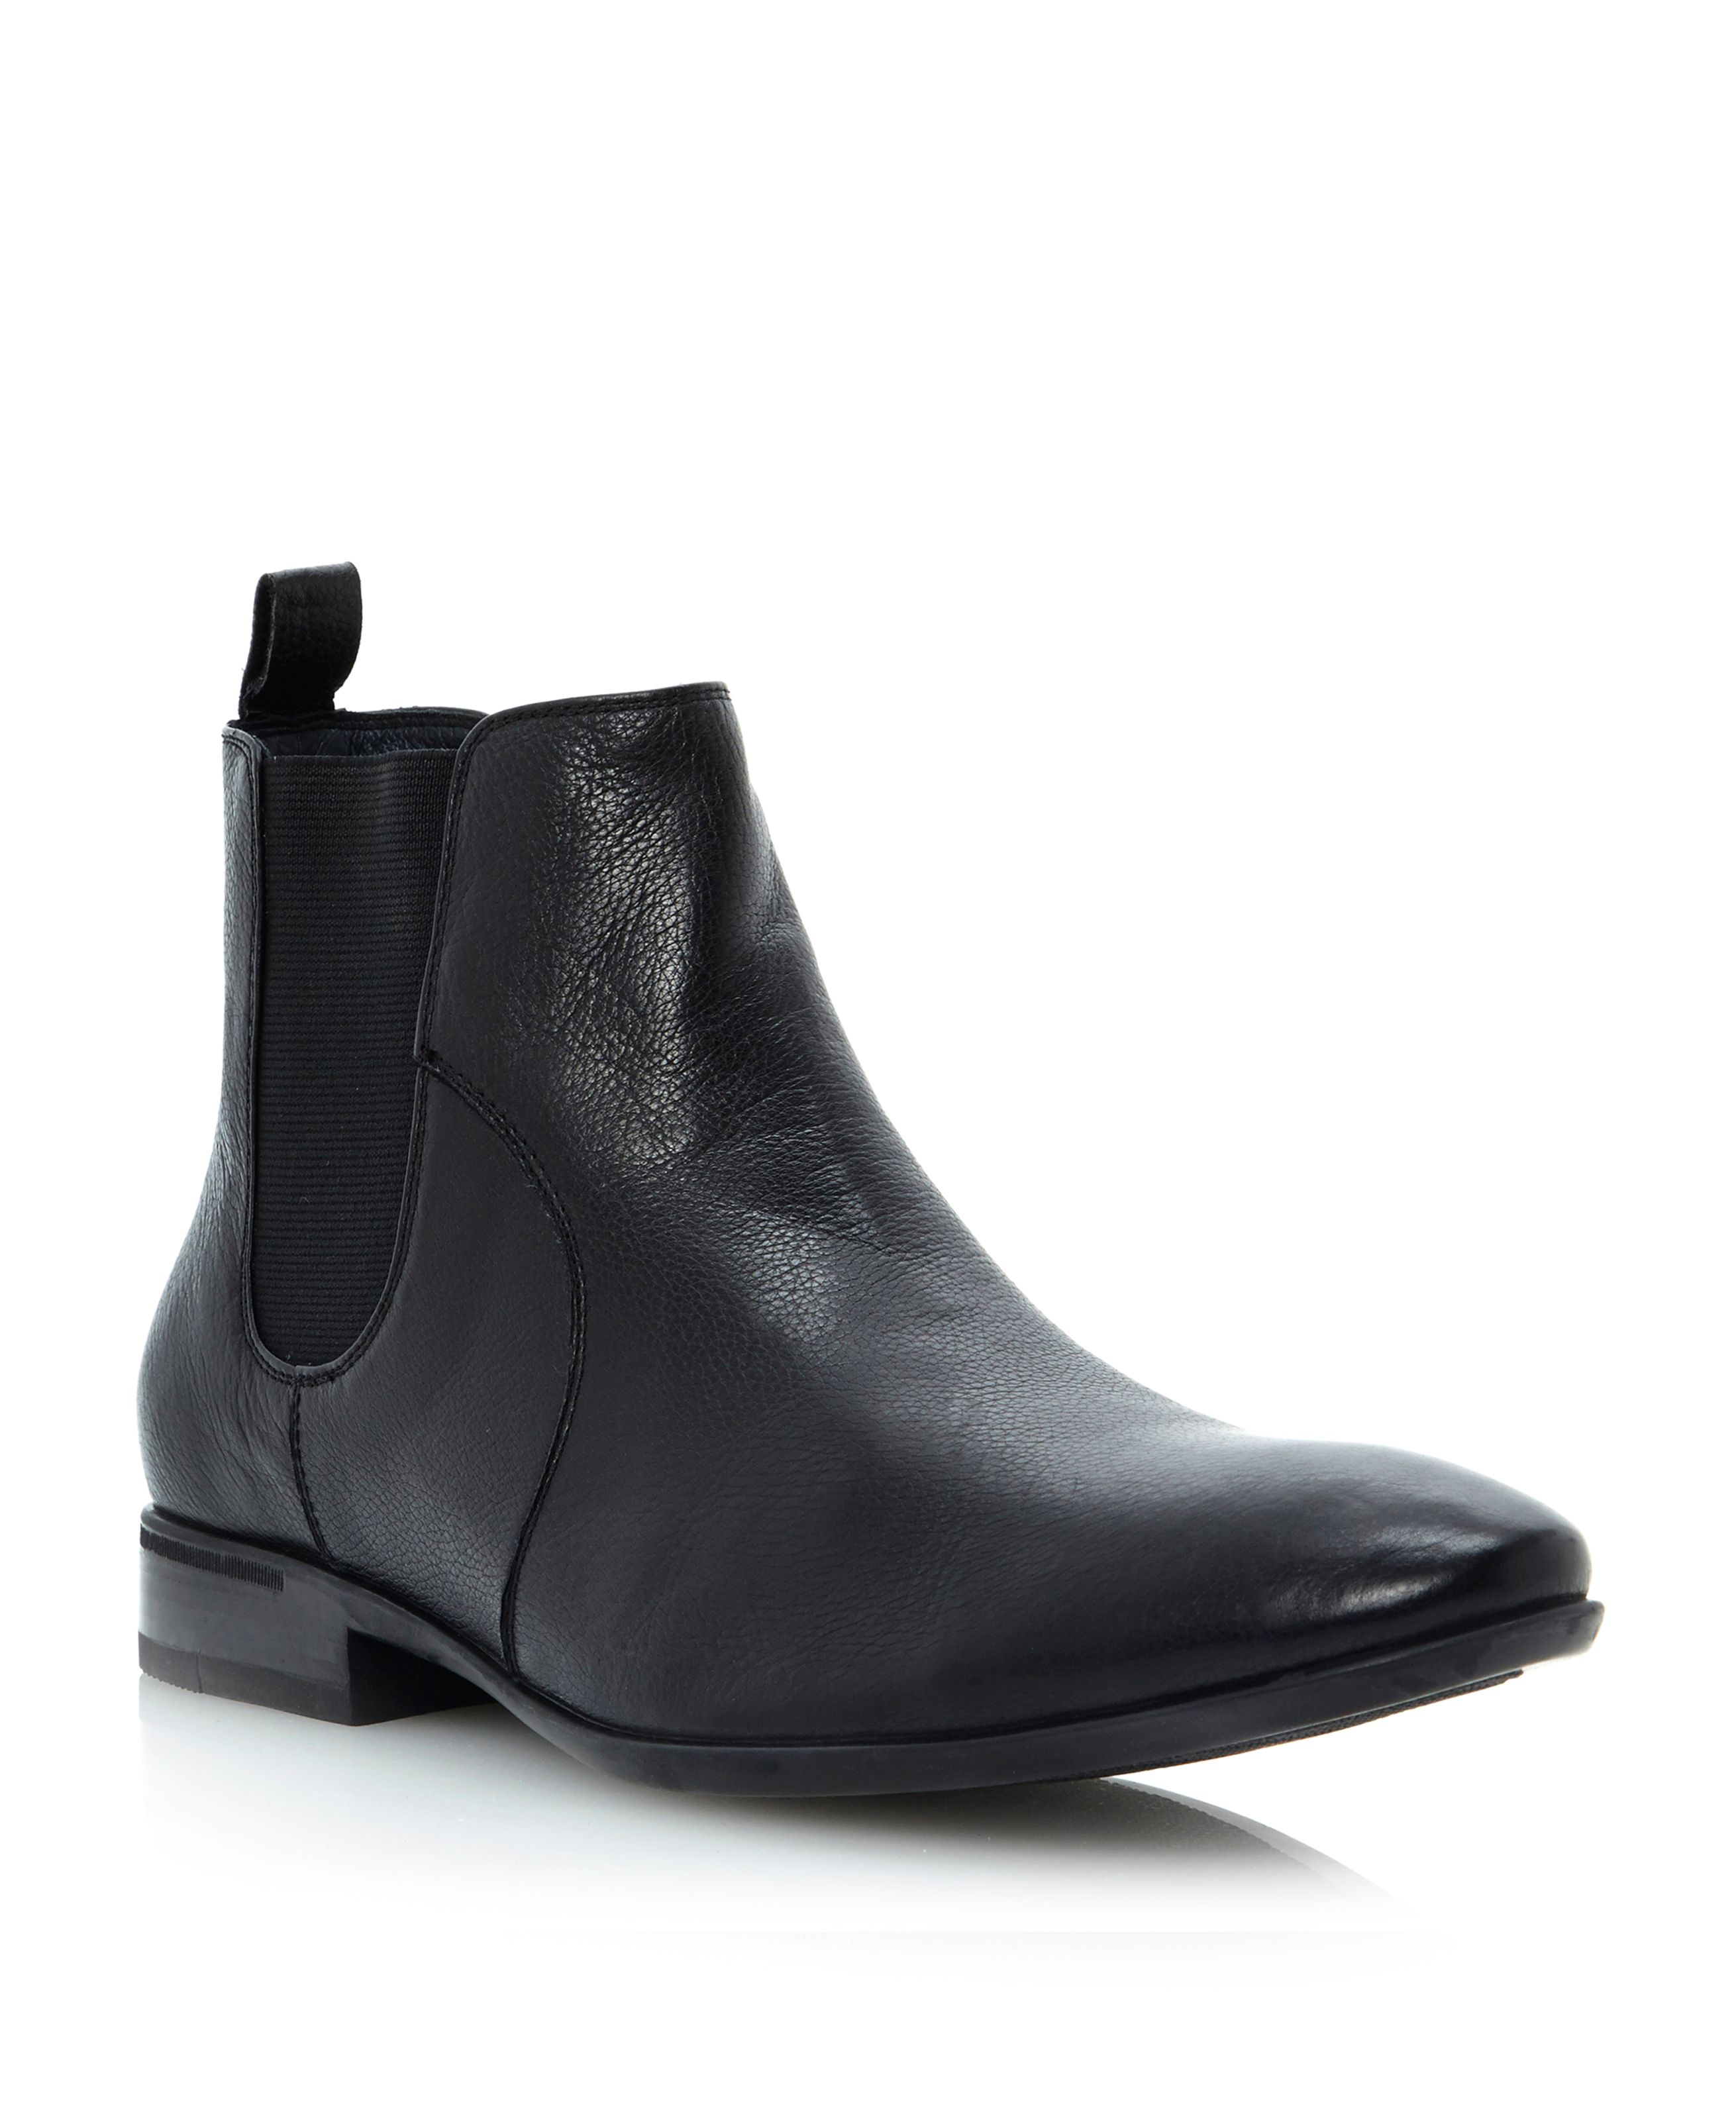 Mcartney sleek plain toe chelsea